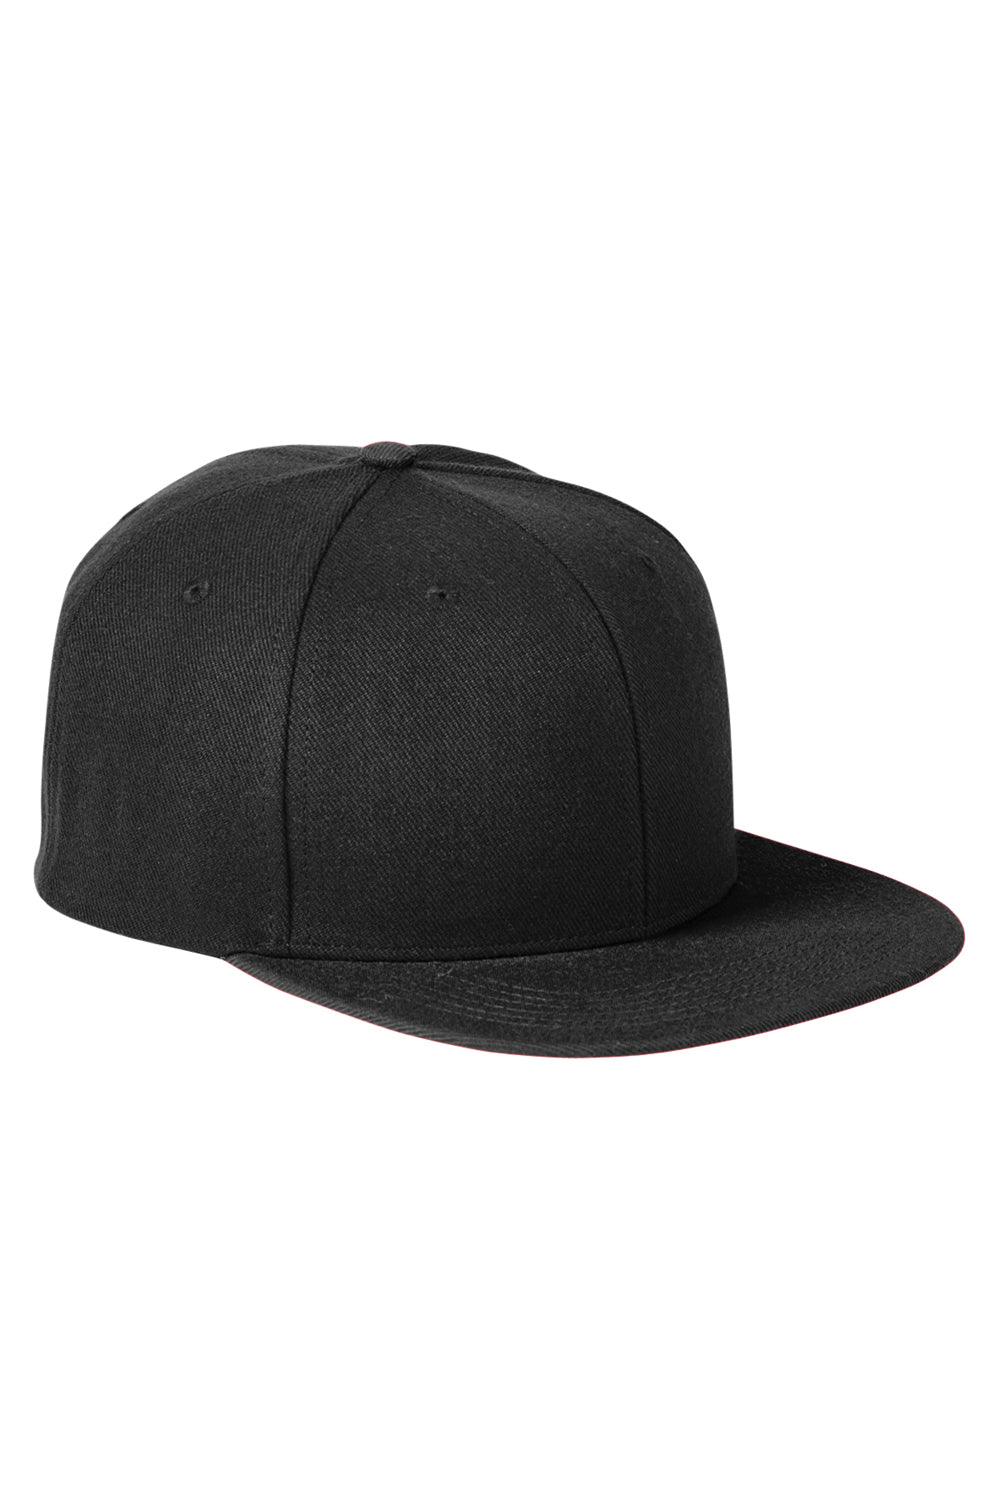 Big Accessories BA539 Mens Adjustable Hat Black Front